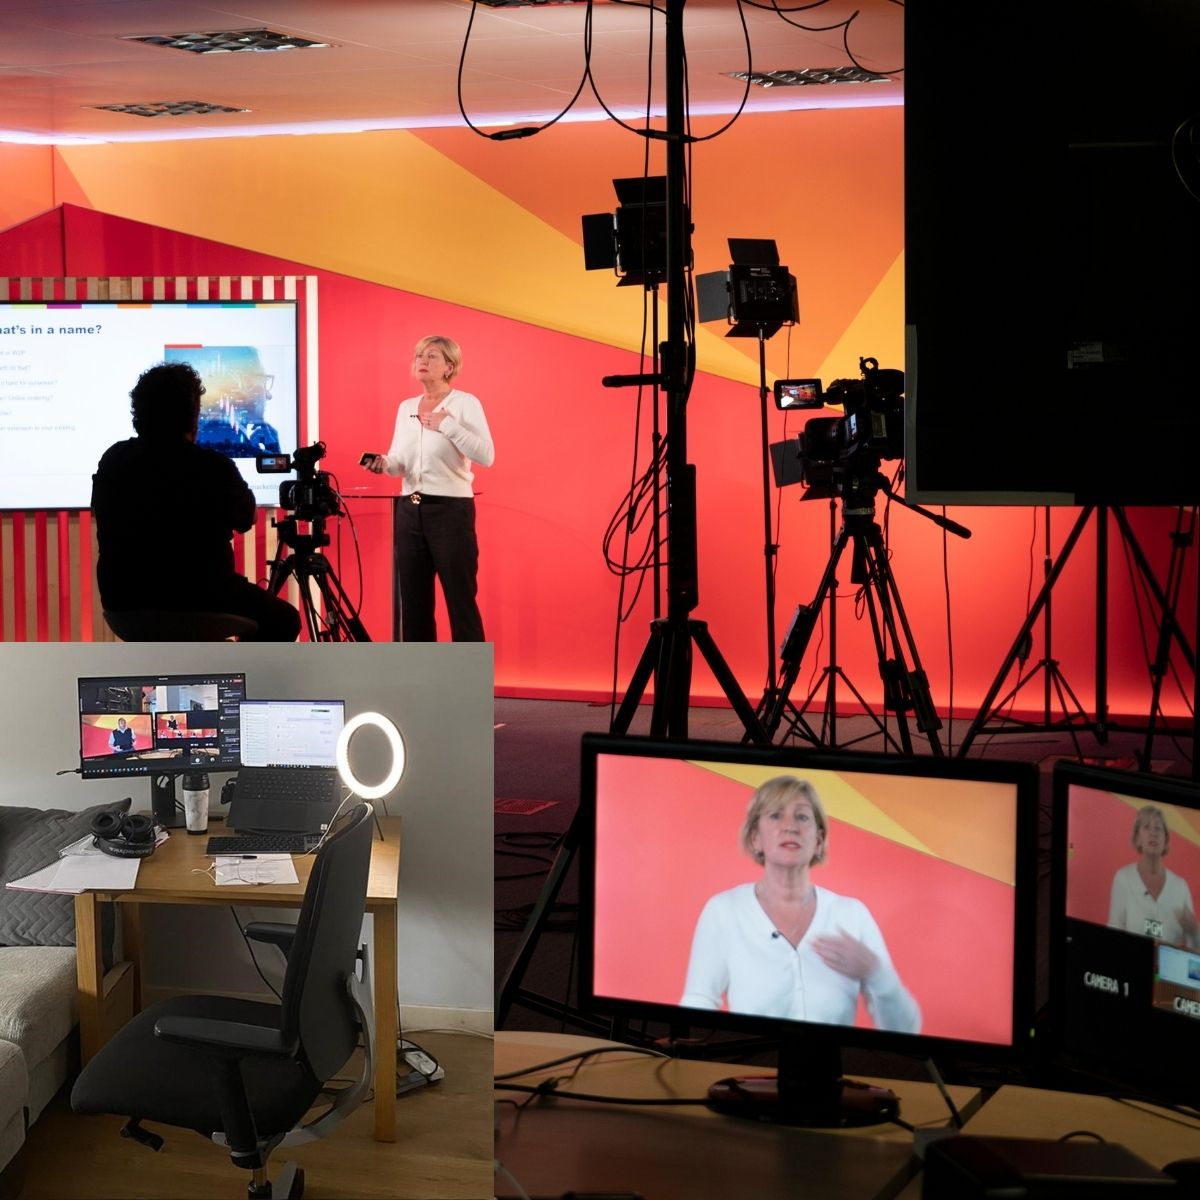 PLAN B: DIRECTING A VIDEO SHOOT REMOTELY